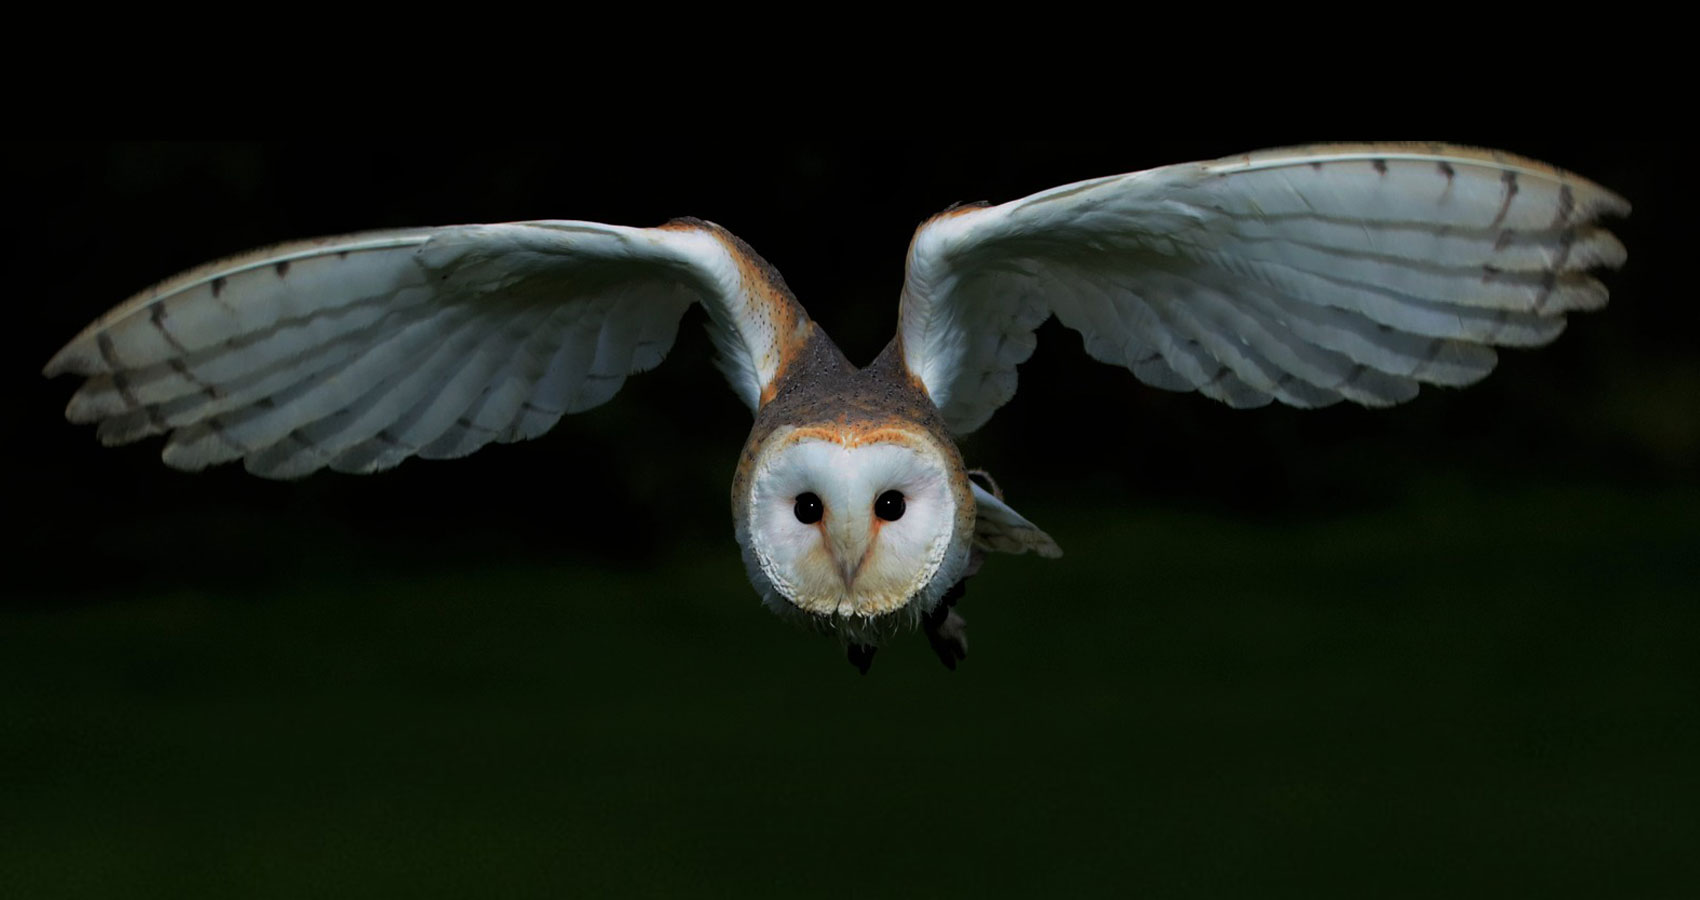 I'd Like To Tell You About The Time I Heard The Owl Call written by Catherine MacMillan Sihoe at Spillwords.com